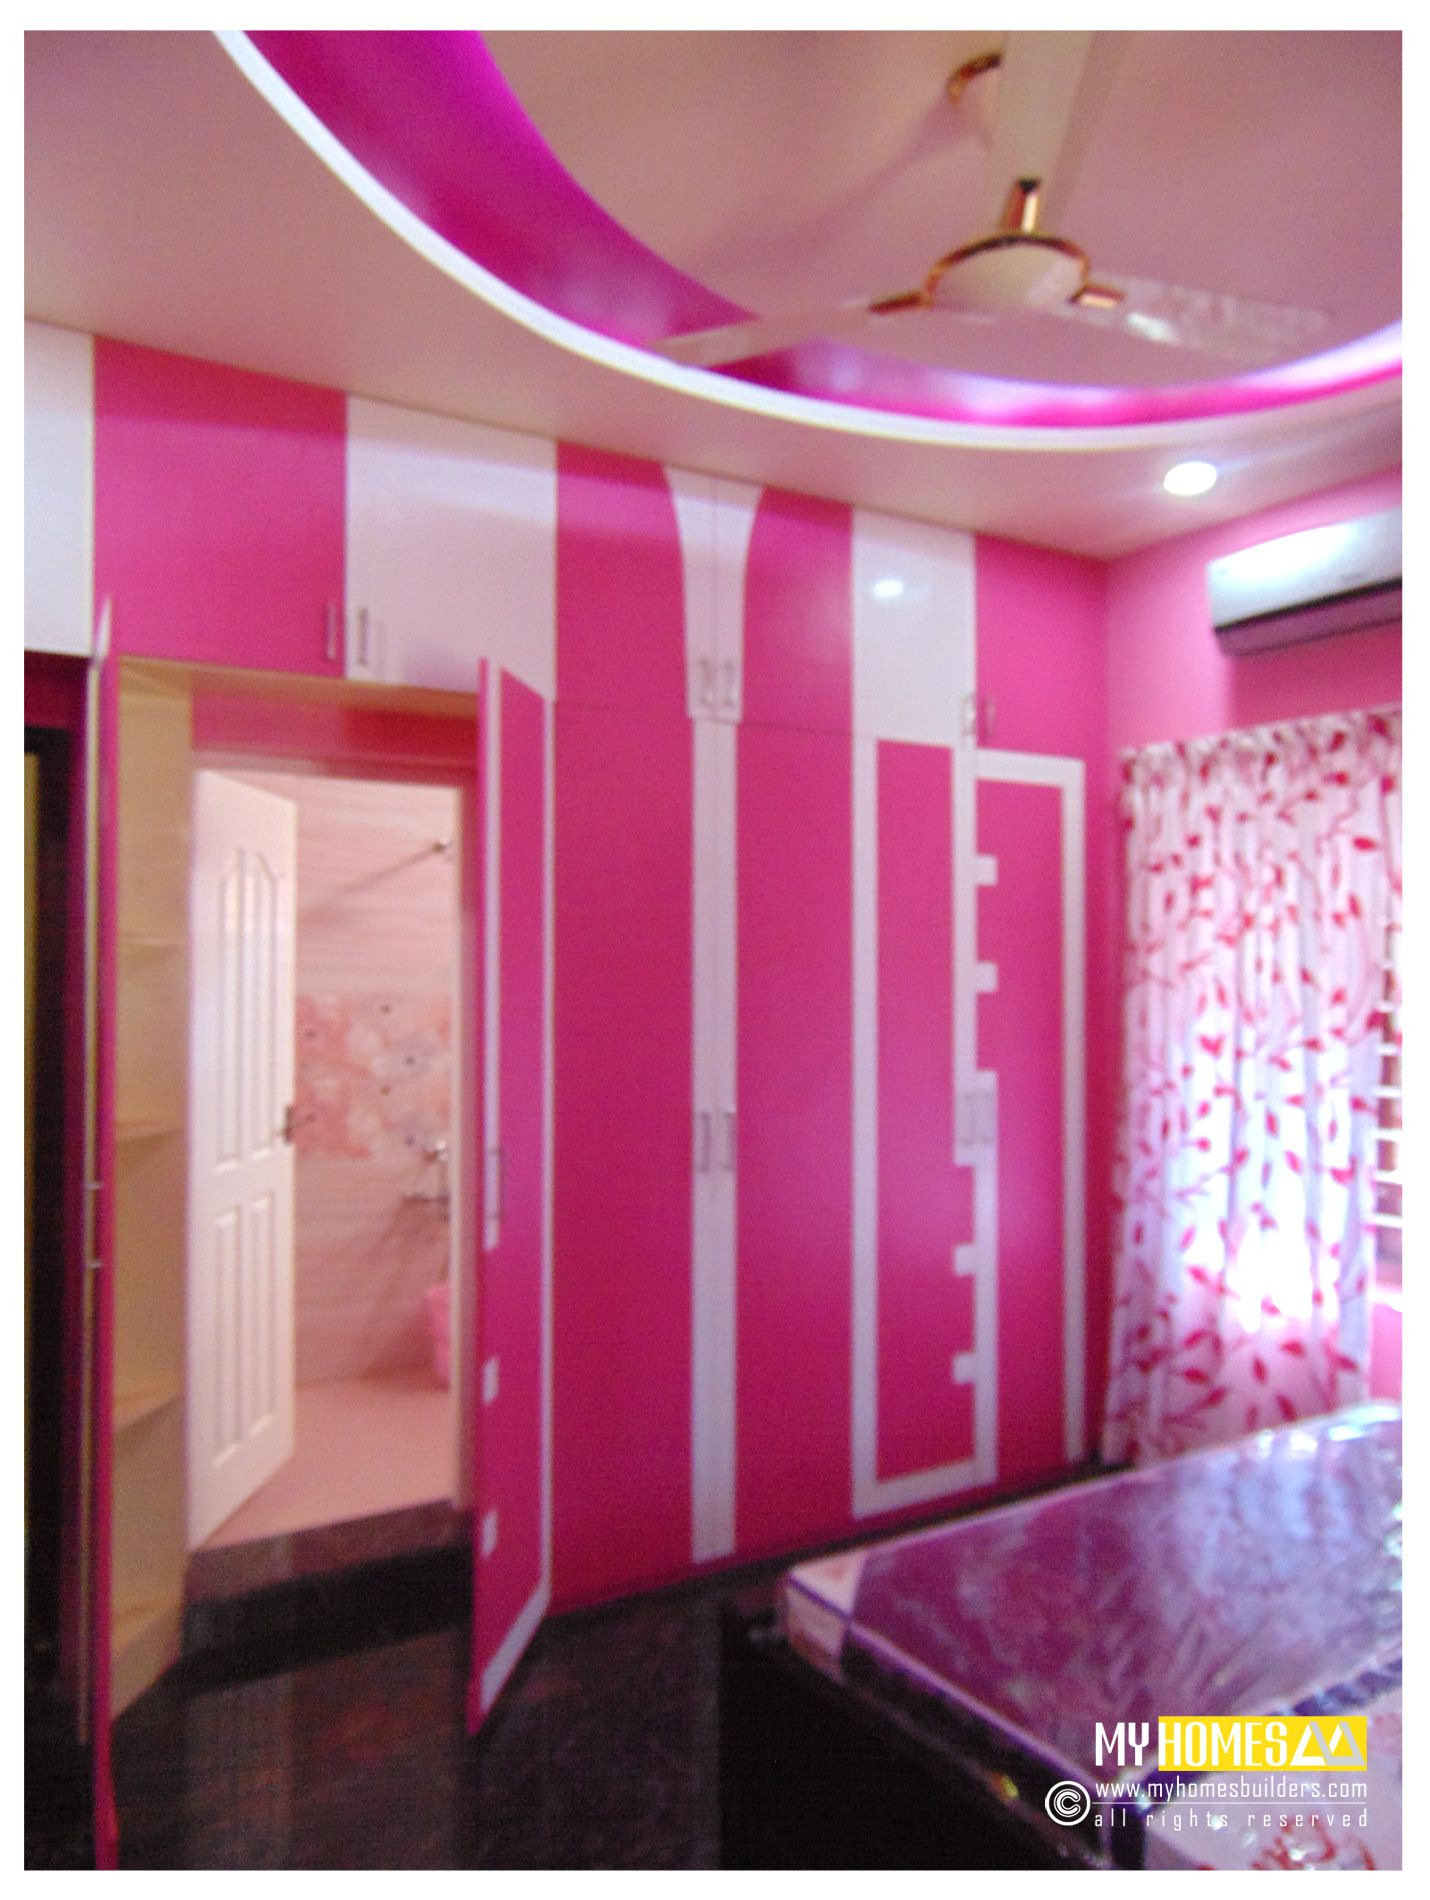 Merveilleux Kerala Homes Top Bedroom Interior Designs Kerala Best Bedroom Inter Designs  For One Of Our Client From Thrissur Kerala